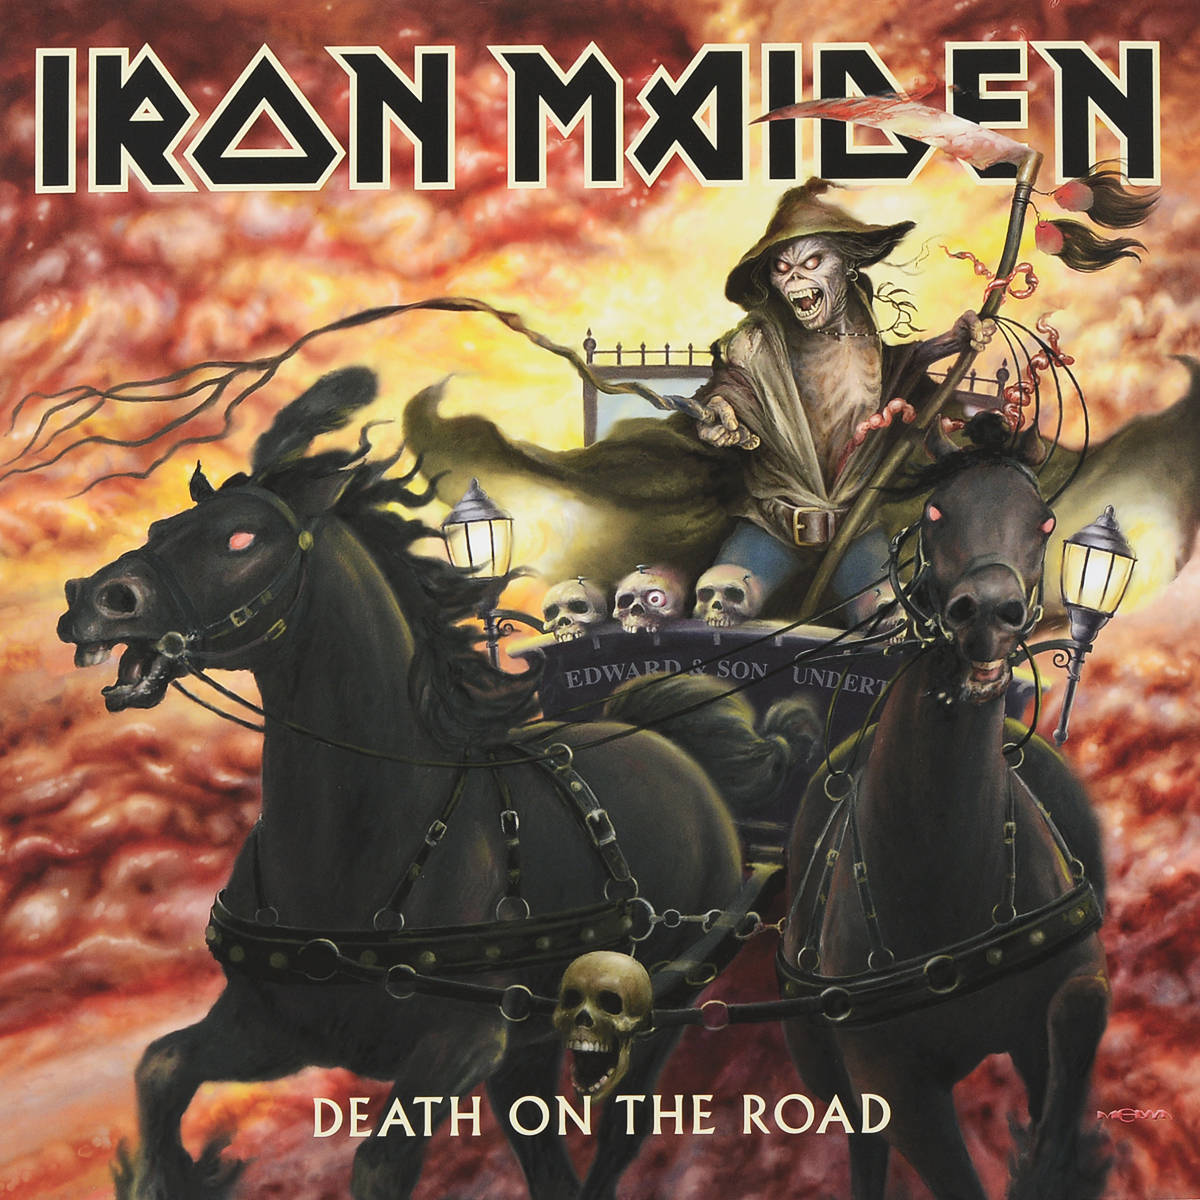 Iron Maiden Iron Maiden. Death On The Road (2 LP) iron maiden iron maiden death on the road 2 lp